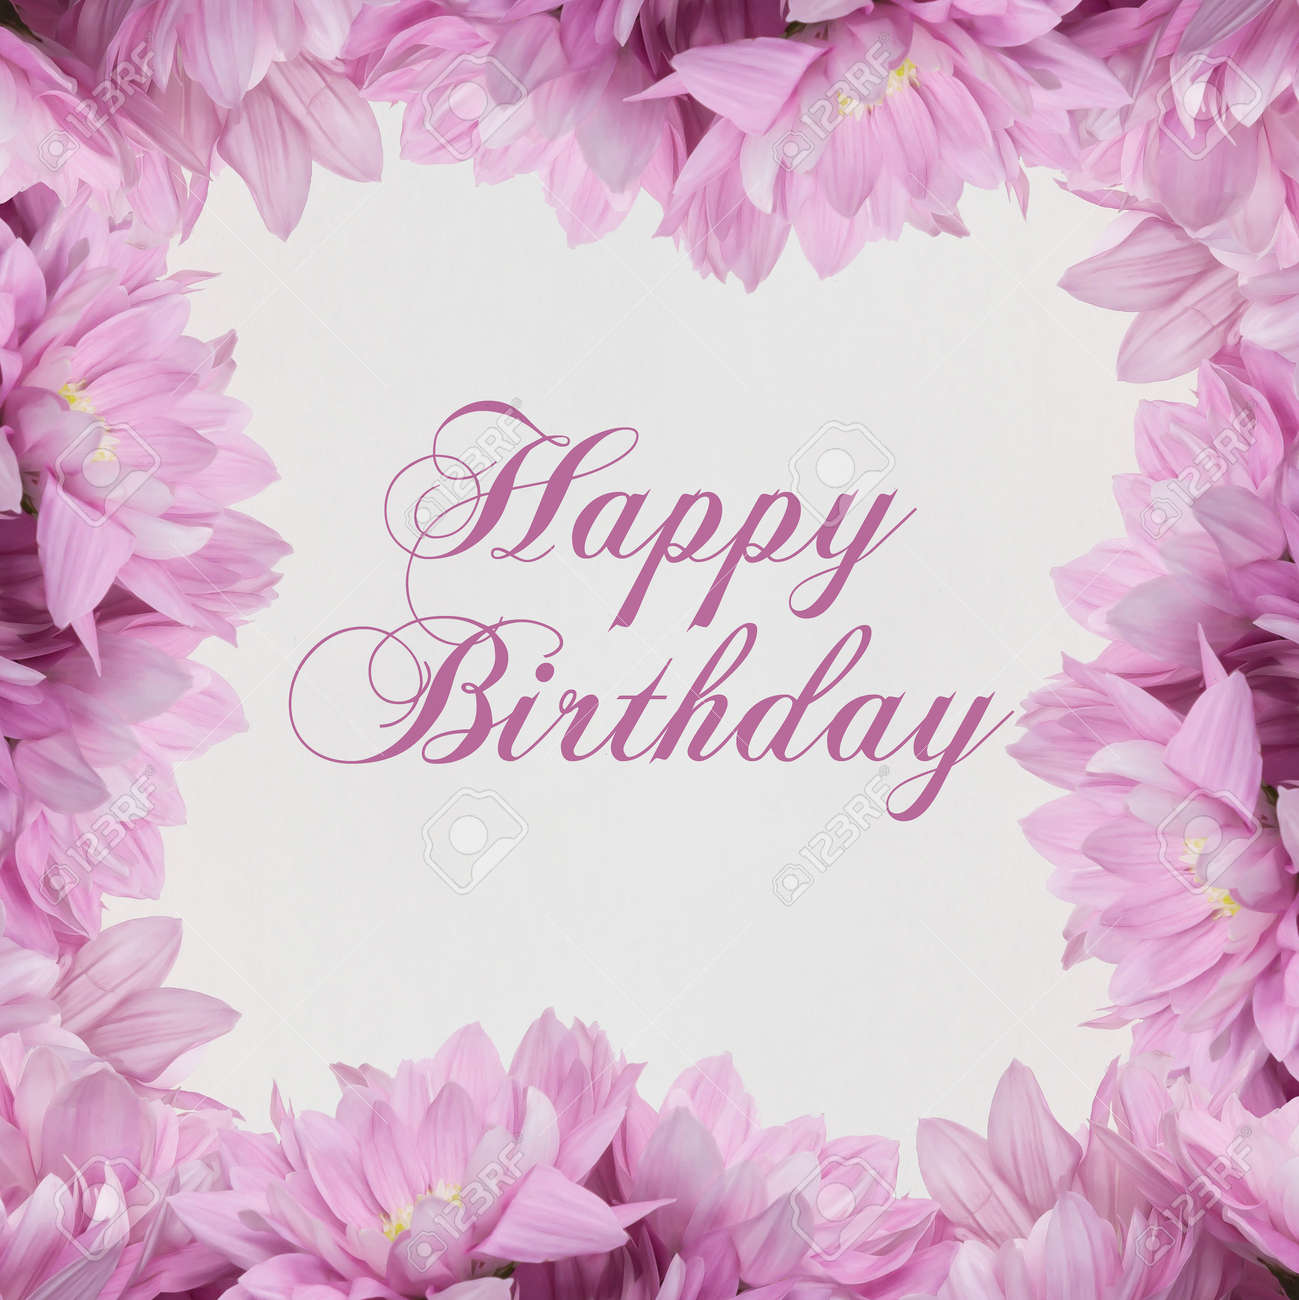 Happy birthday flowers on white background stock photo picture and happy birthday flowers on white background stock photo 41368006 izmirmasajfo